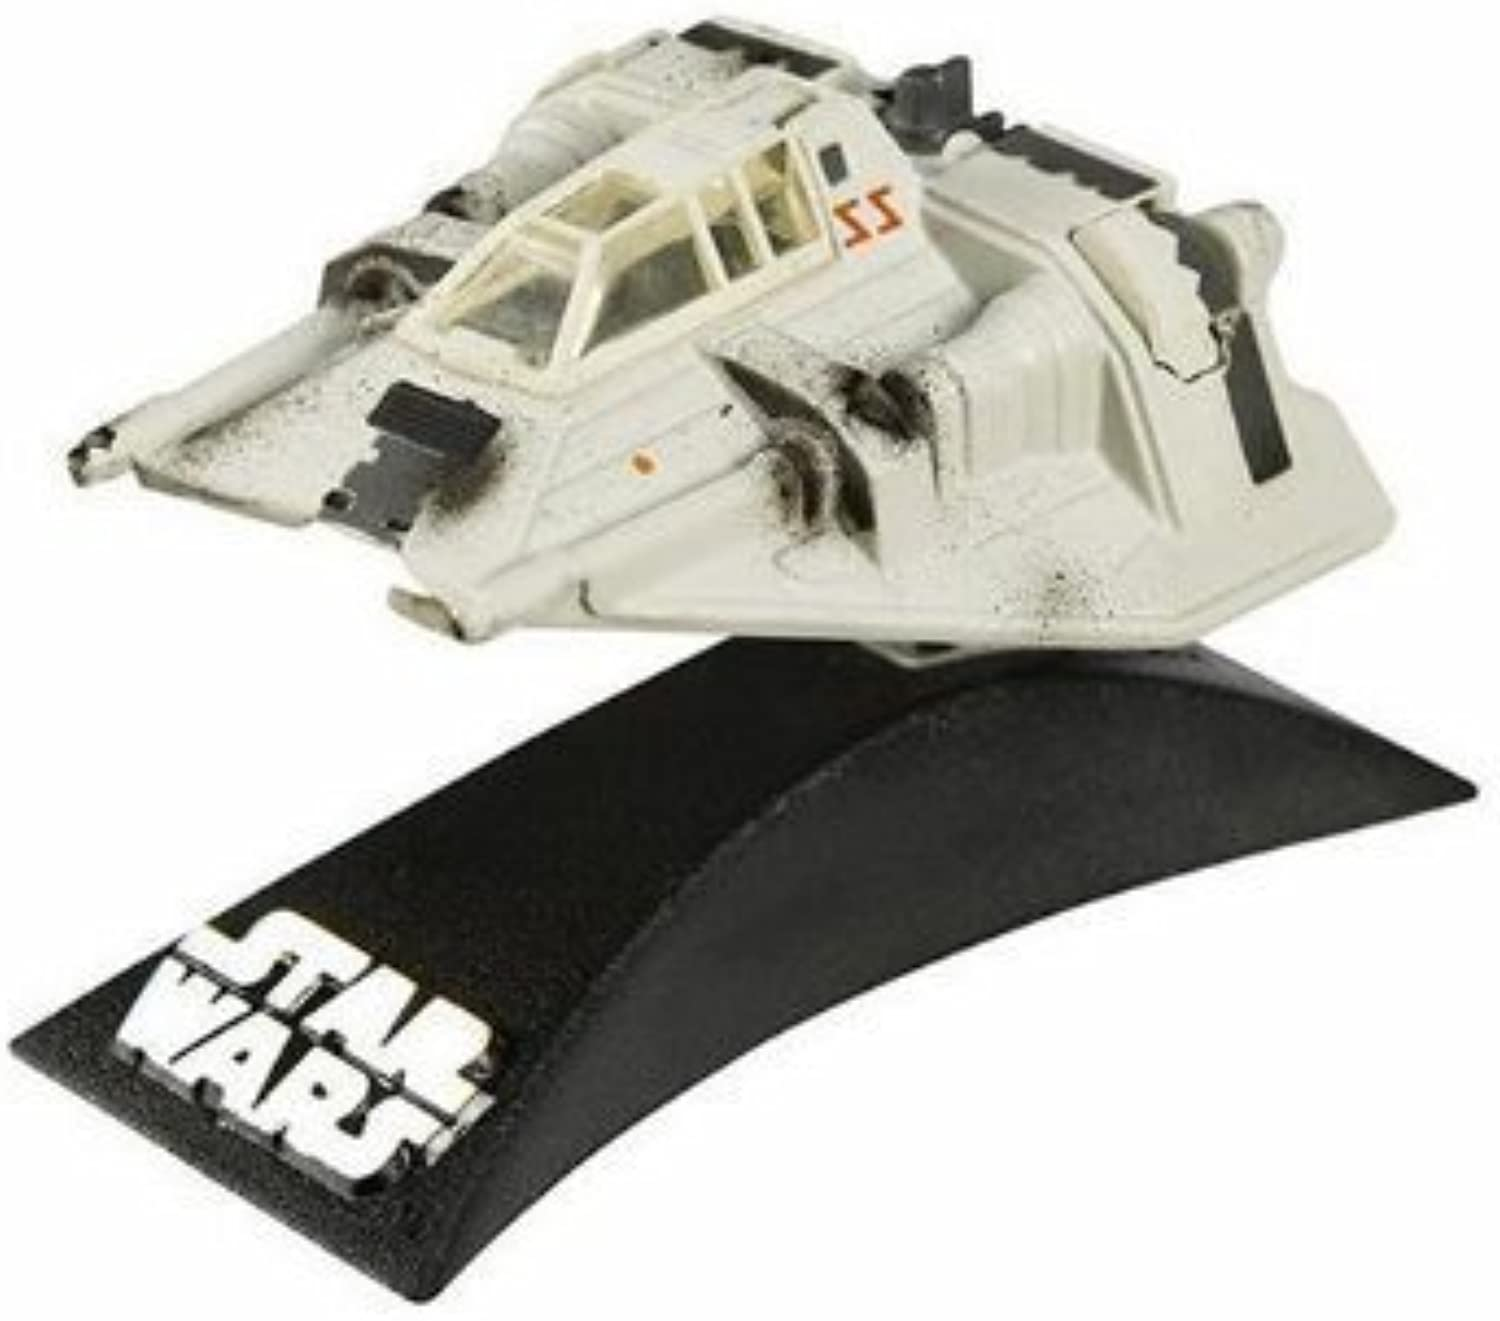 Star Wars Titanium Series Die Cast Metal Snow Speeder with Movable Action Features